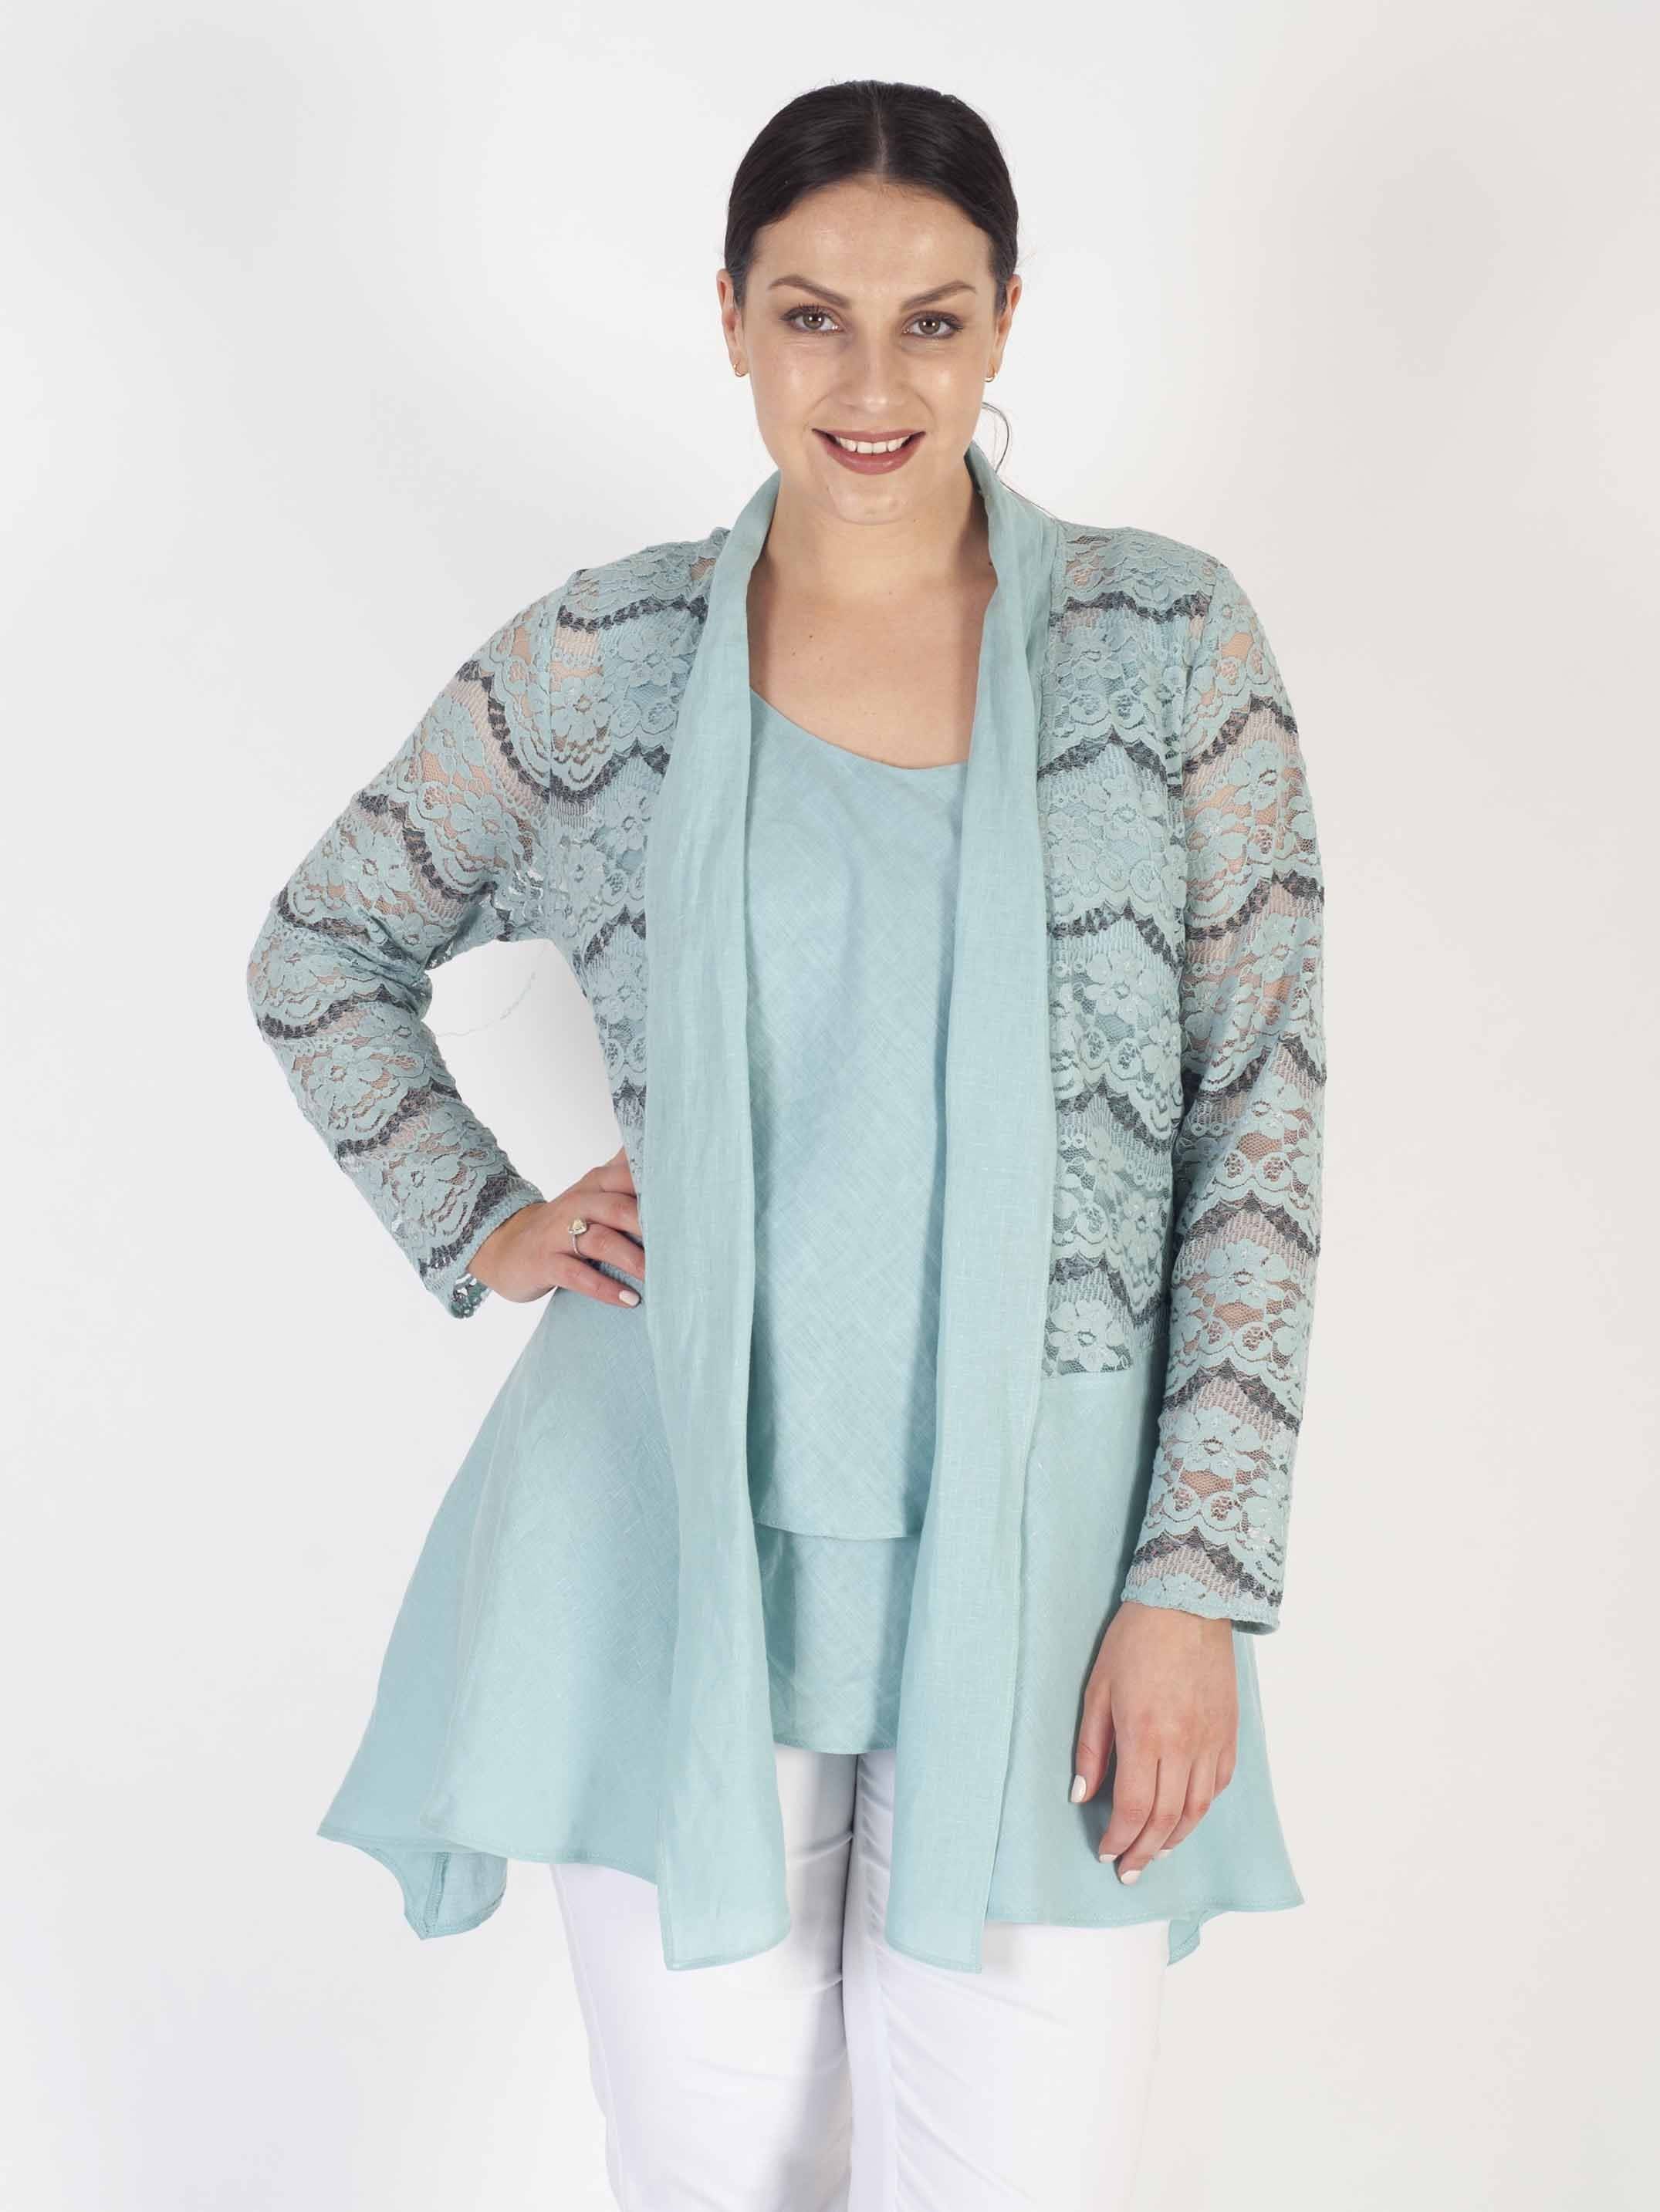 Aqua Scallop Lace Trim Linen Jacket